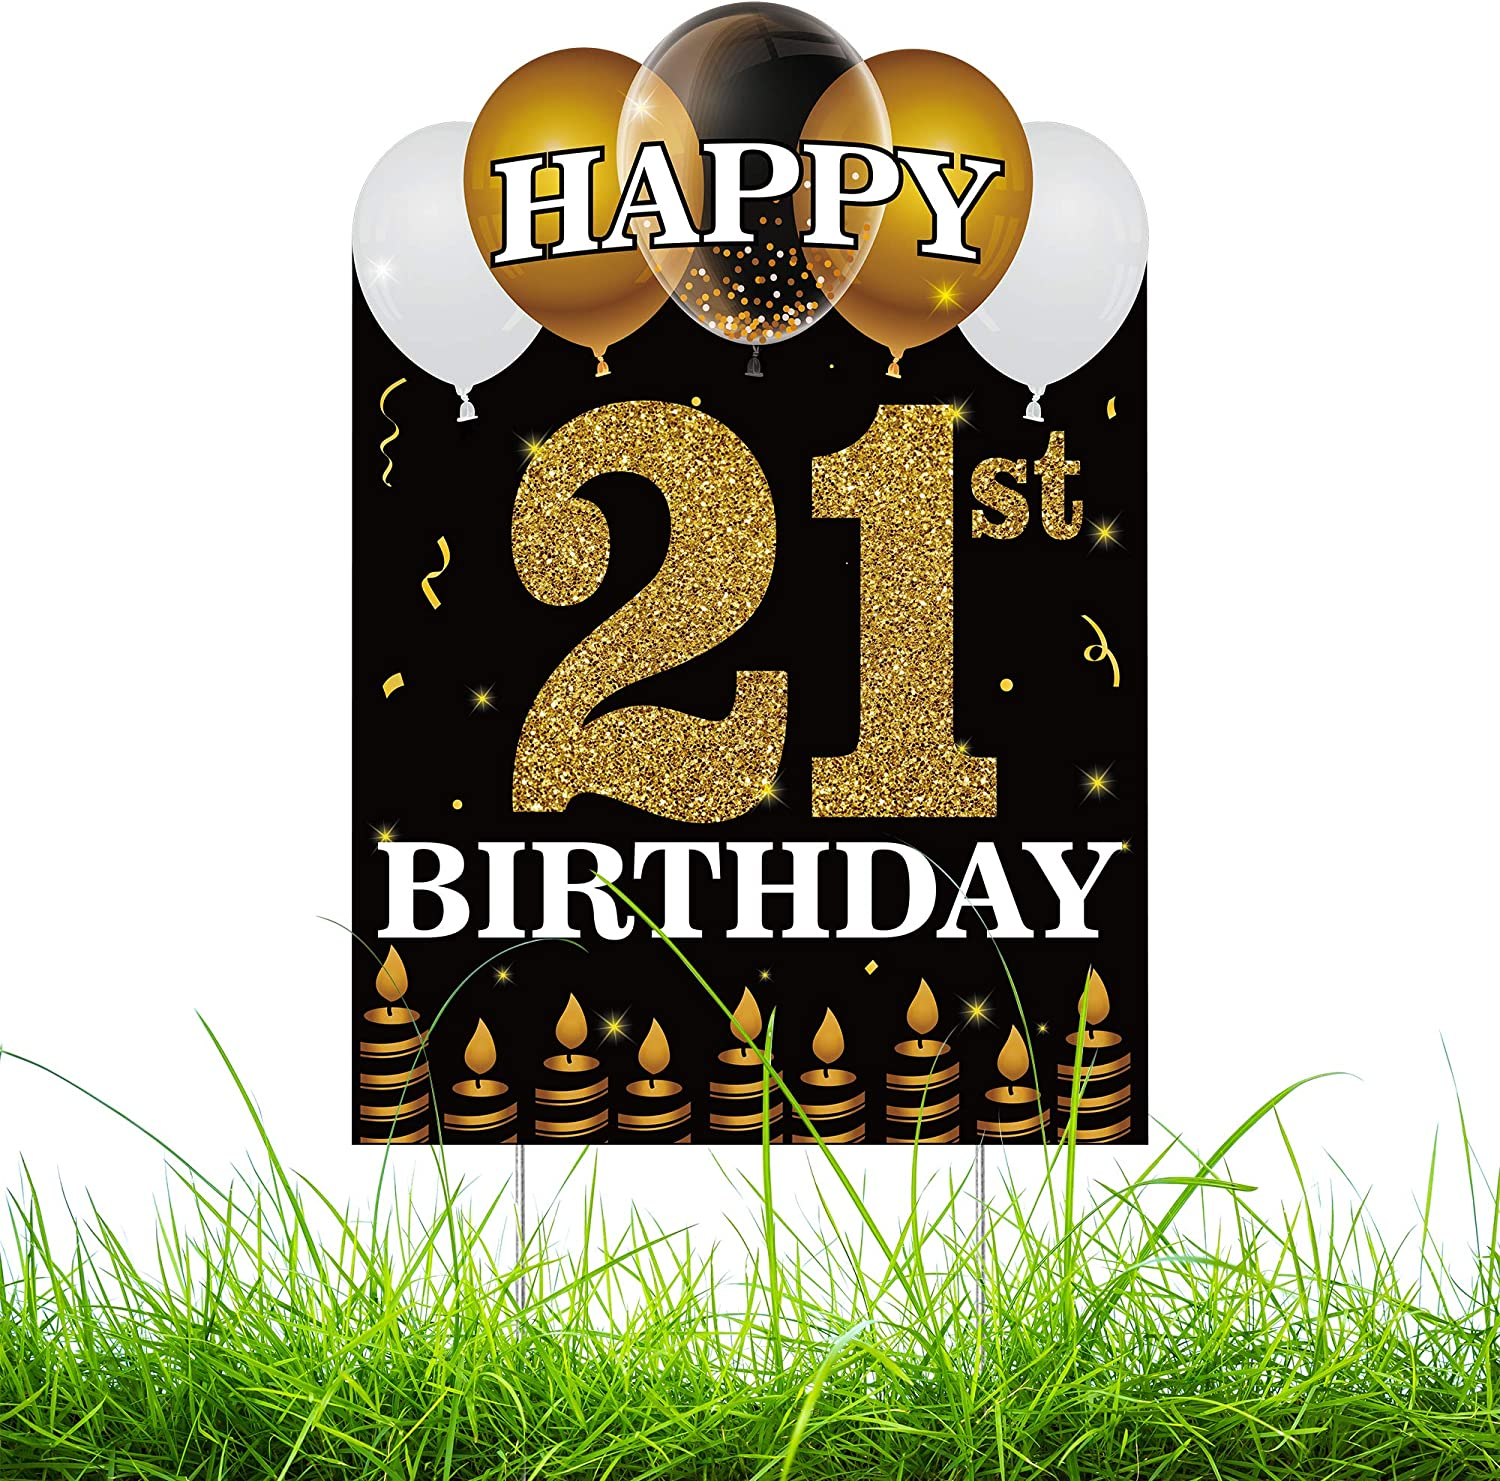 WATINC Happy 21st Birthday Yard Sign with Metal Stakes Double Sided Printing Large Waterproof Lawn Signs Gold White Balloons Black Outdoor Party Decorations for 21 Years Old Boys Girls 11.8 x 16.9 in